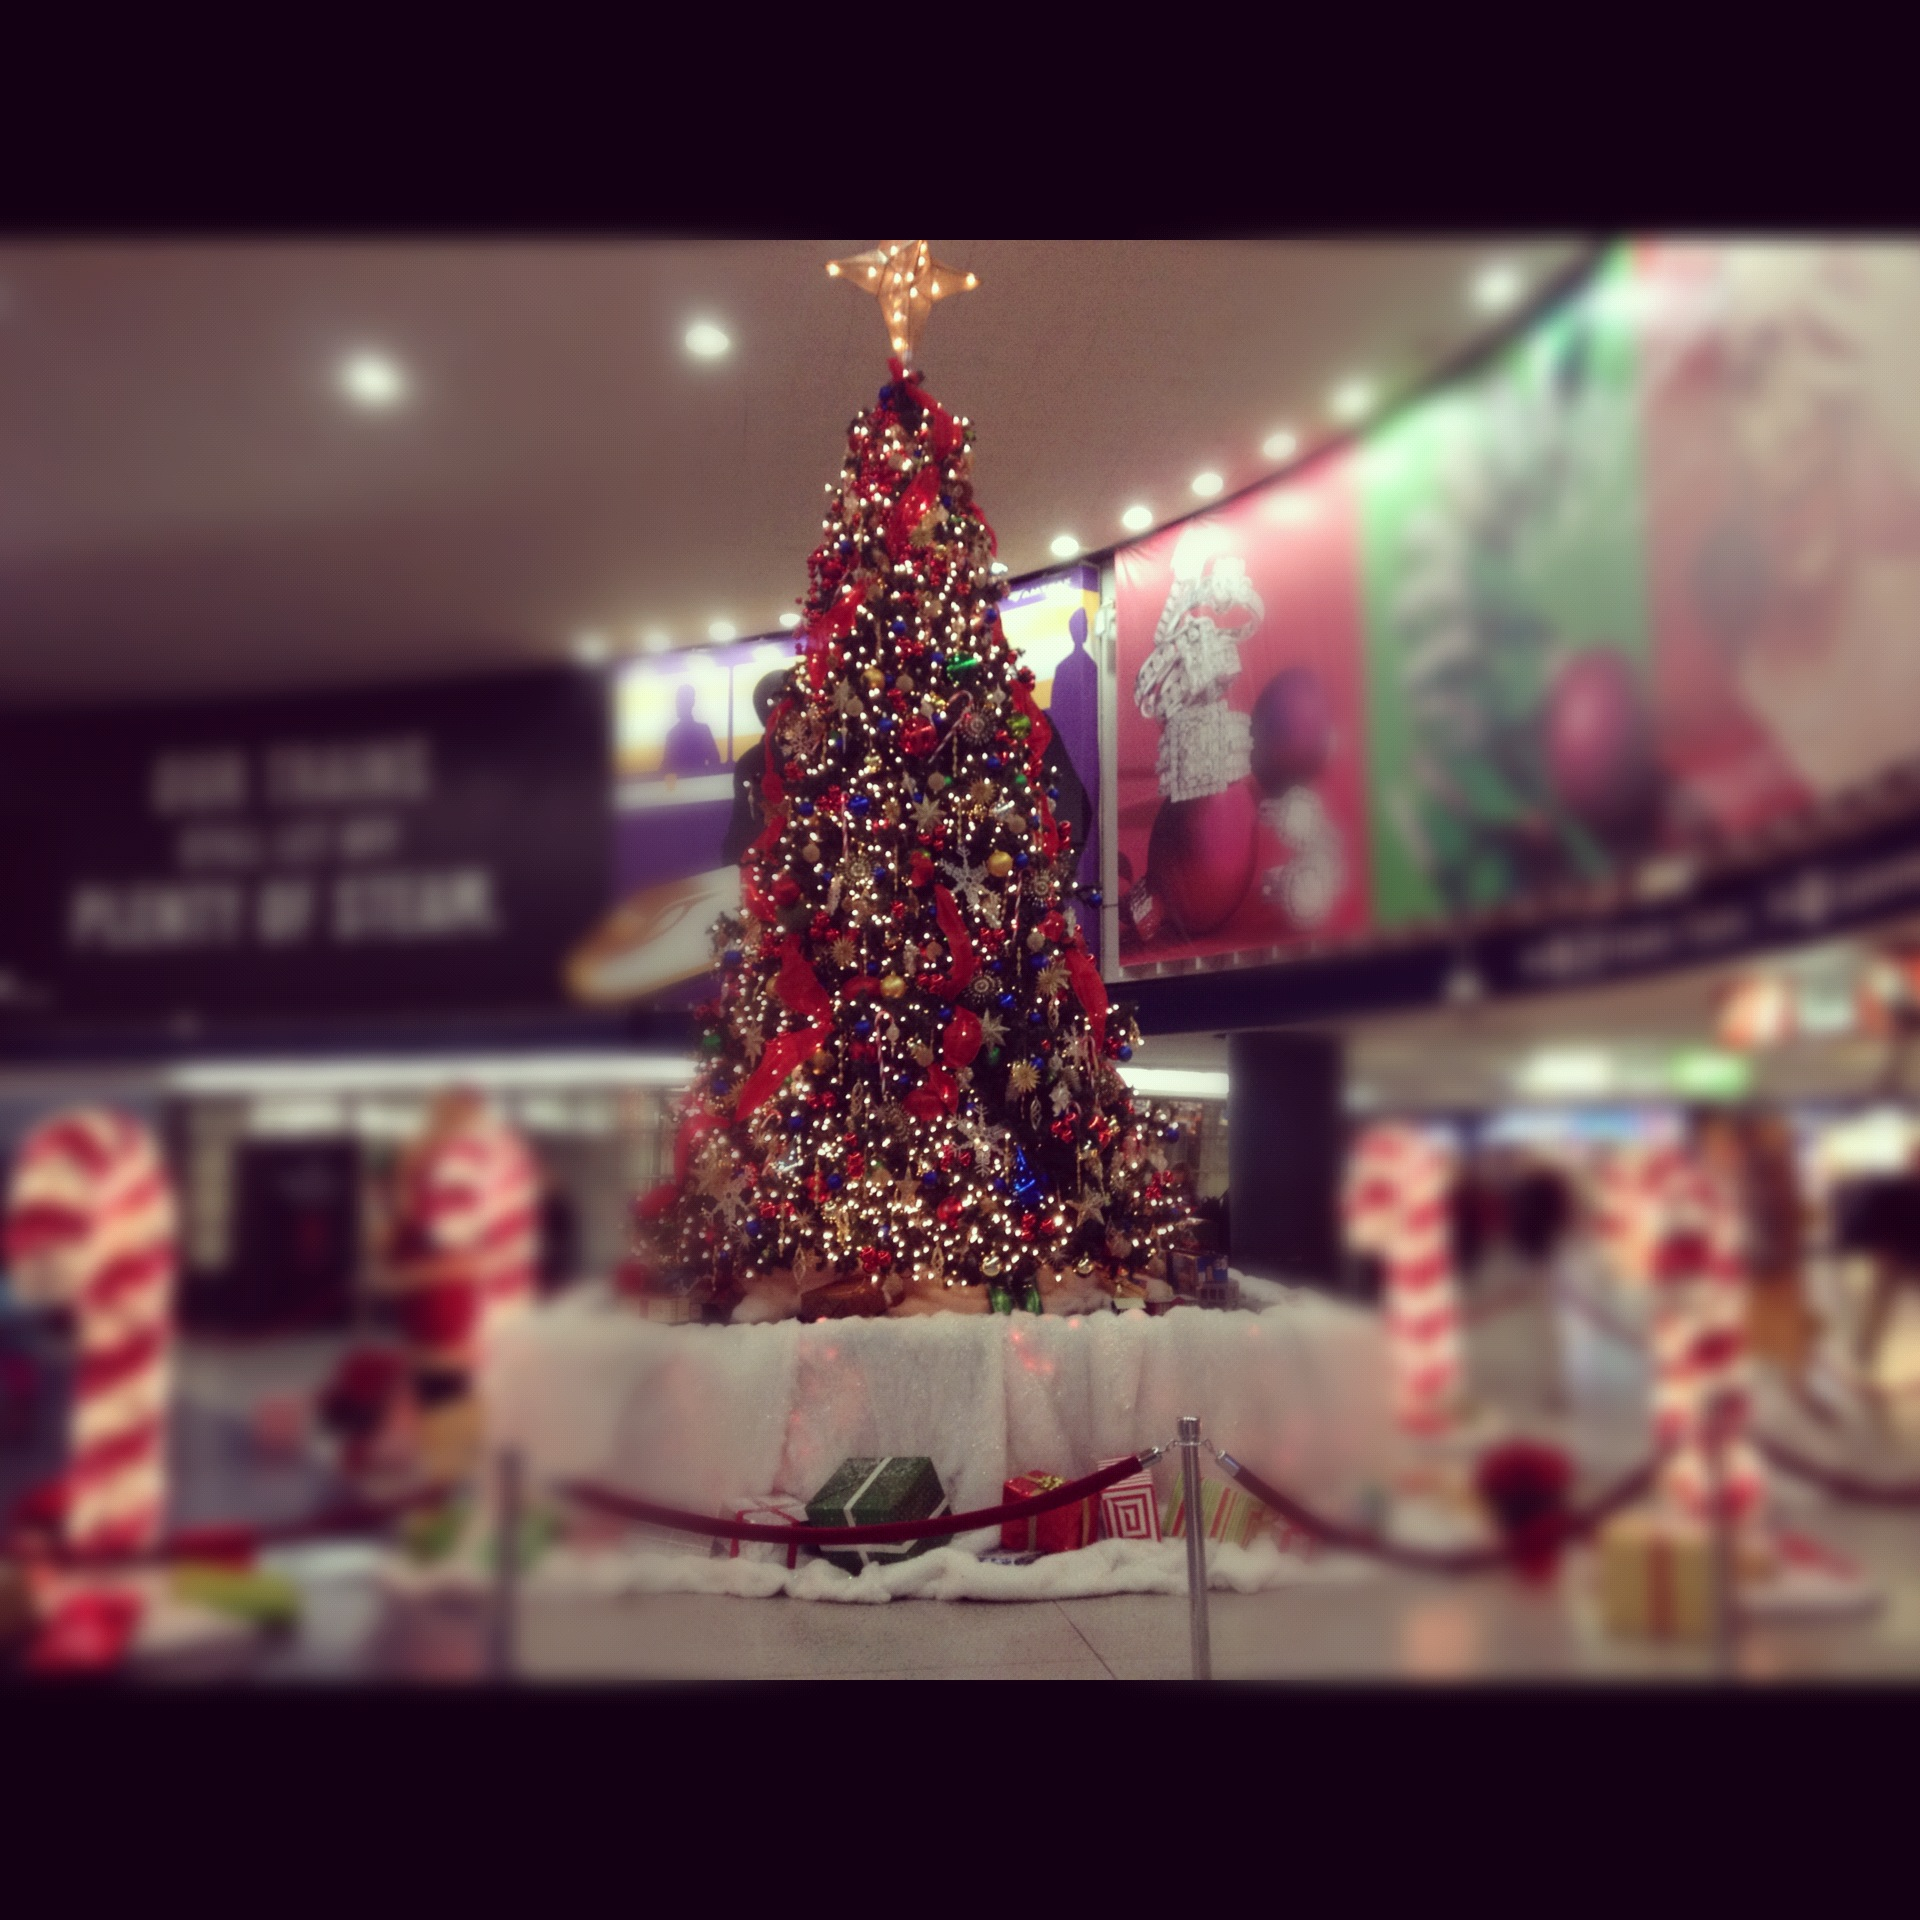 12:8-penn-station-christmas-tree